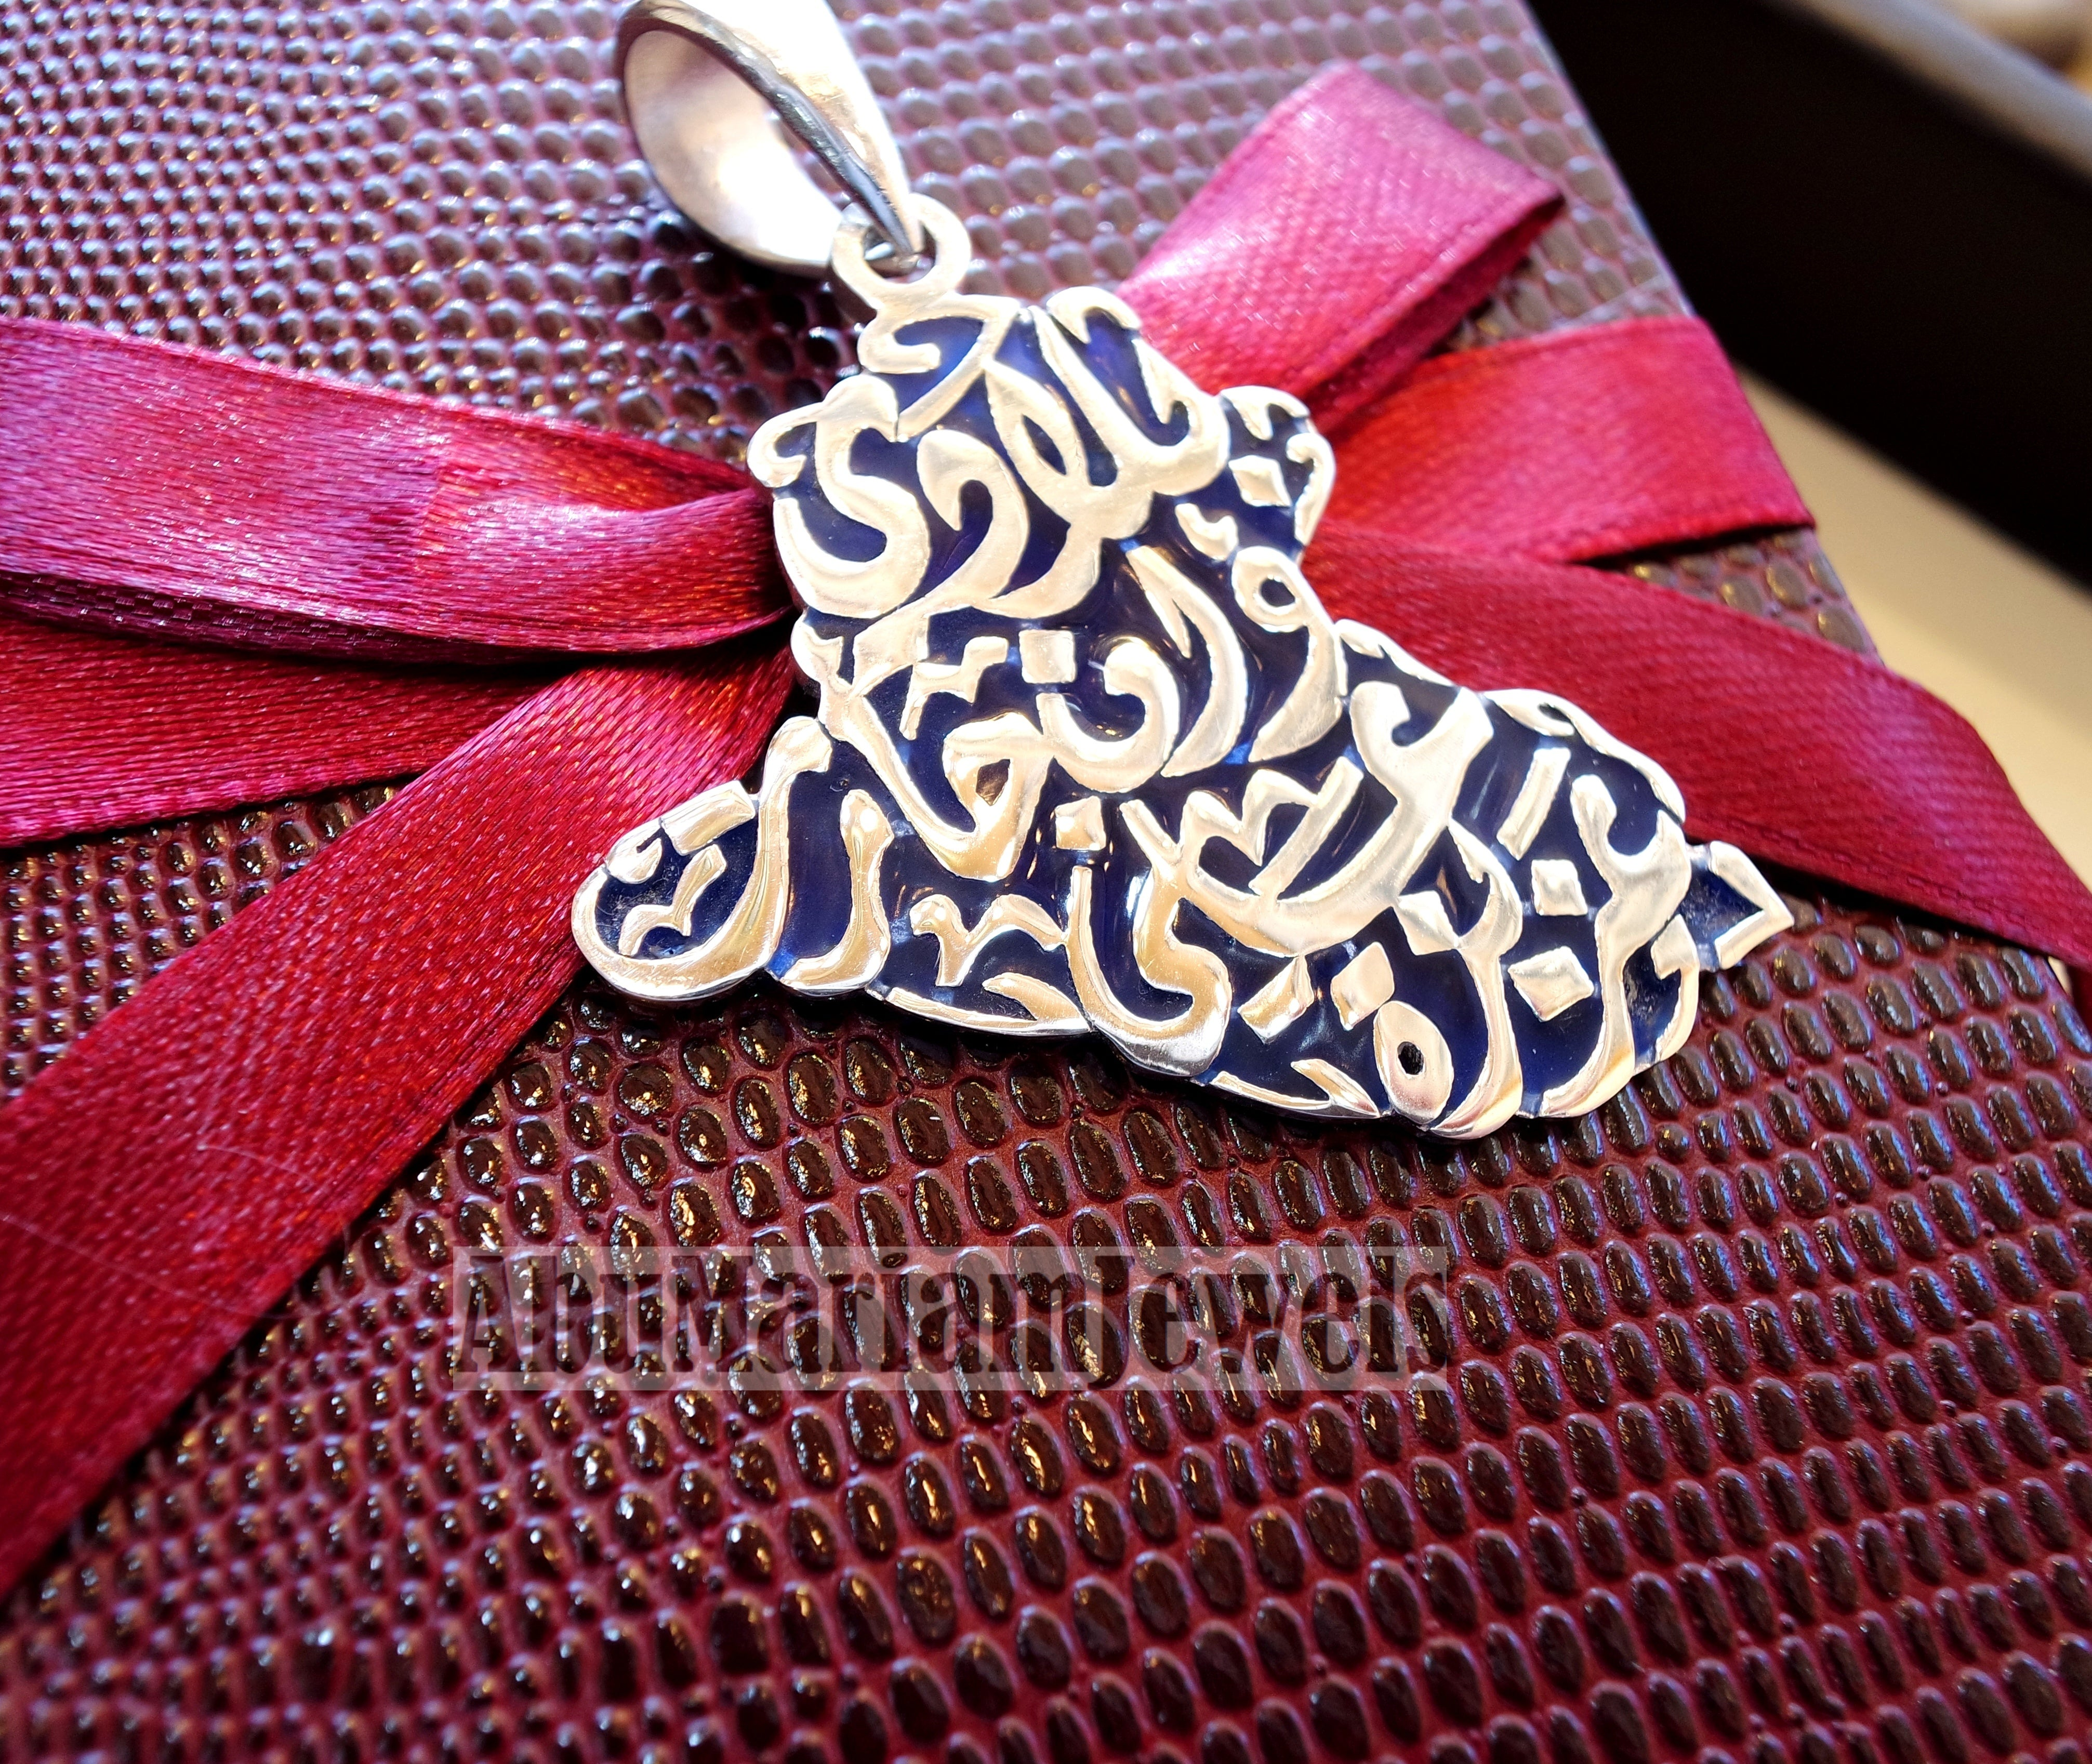 Iraq map pendant with famous poem verse sterling silver 925 with dark blue enamel مينا jewelry arabic fast shipping خارطة العراق